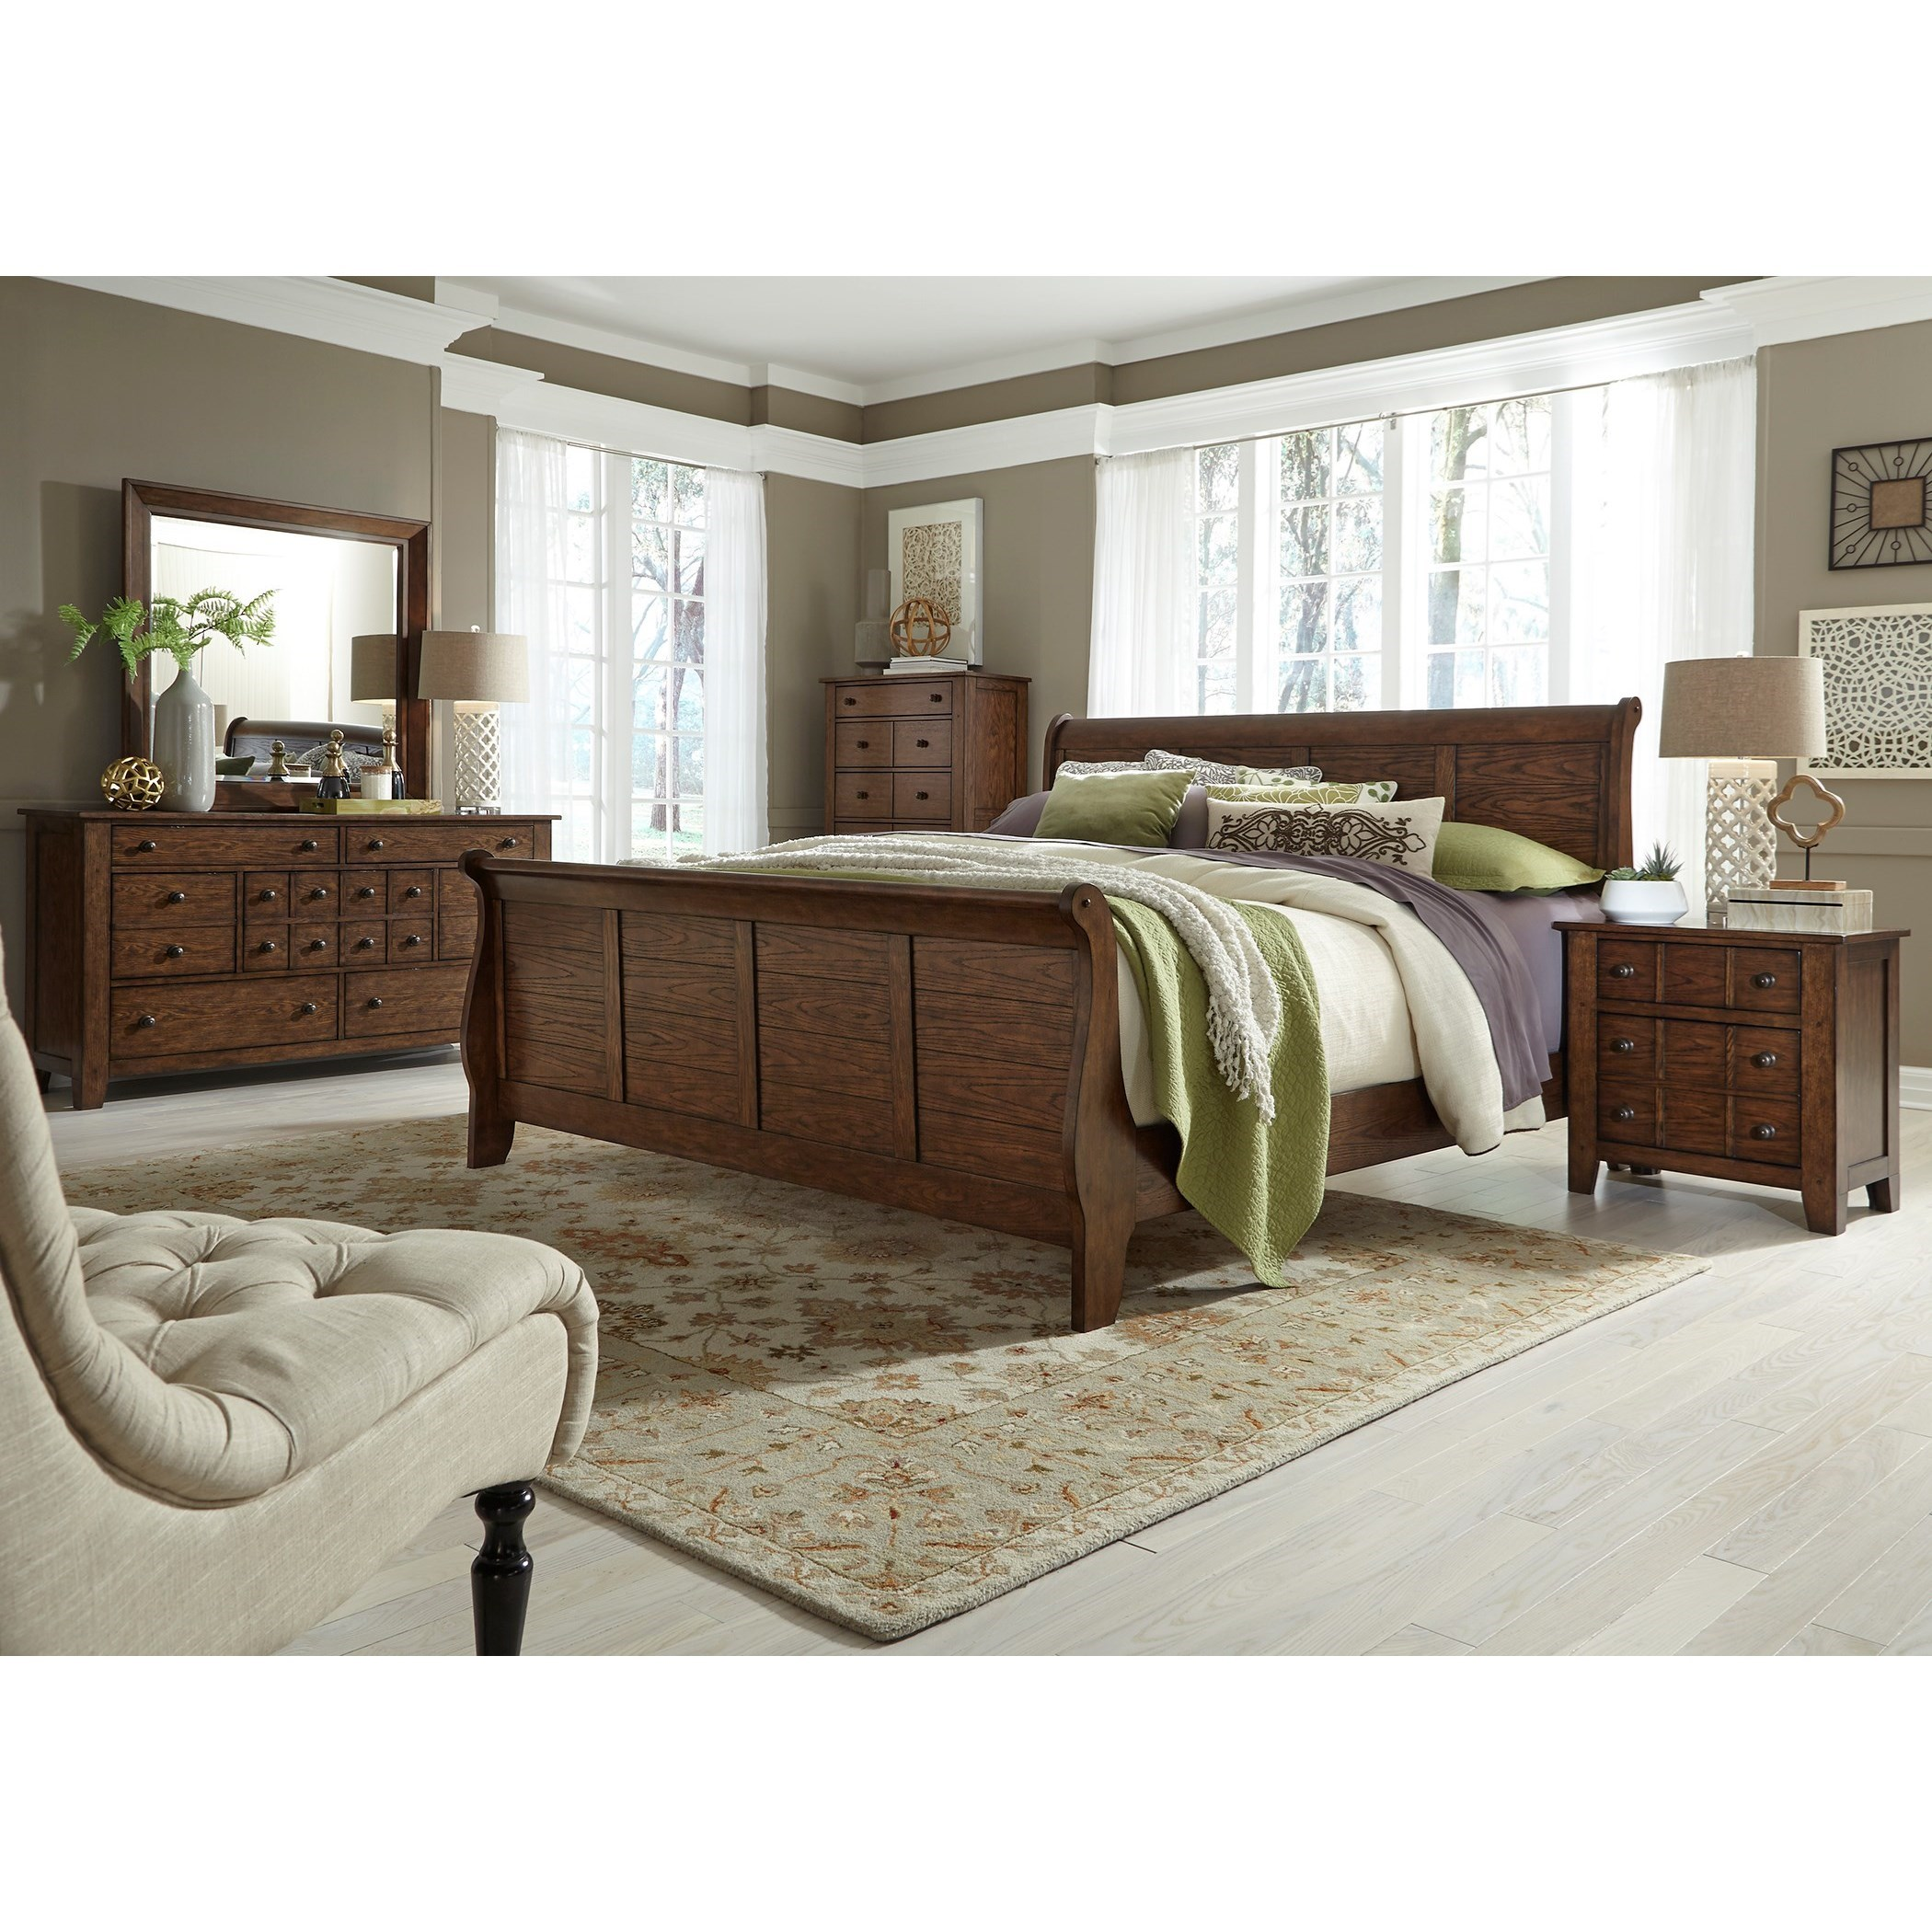 cabin bedroom furniture liberty furniture s cabin bedroom 10969